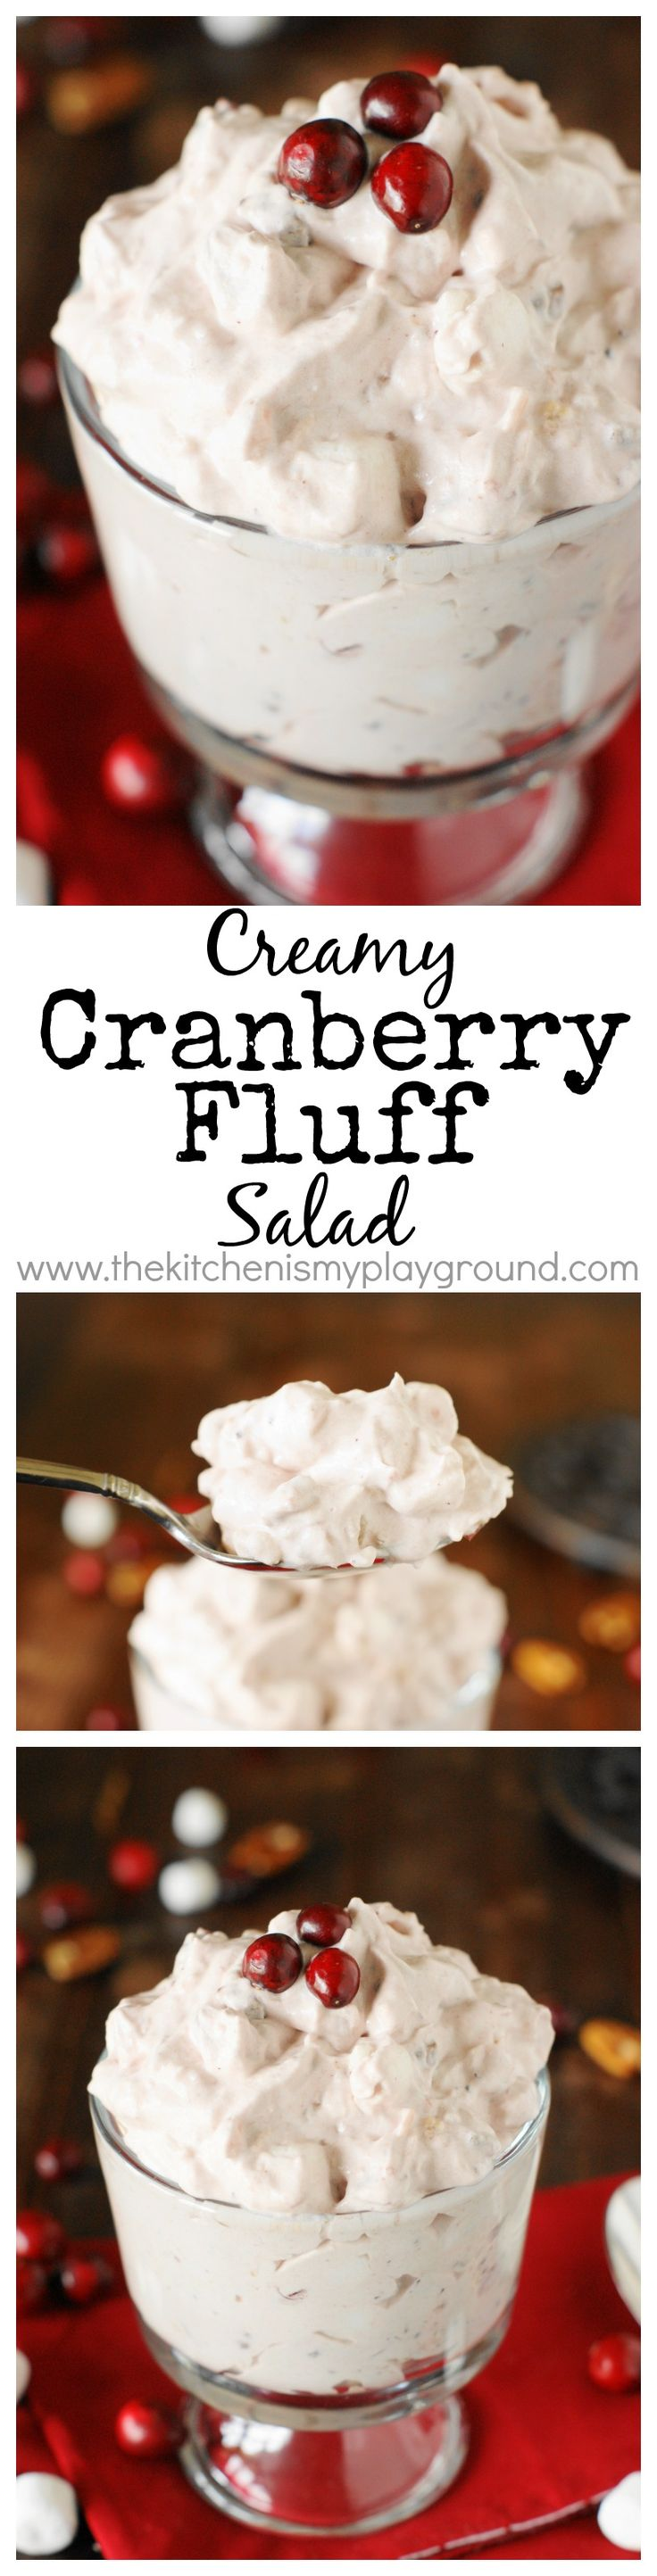 Cranberry Fluff Salad ~ Enjoy that Thanksgiving or Christmas cranberry sauce in a creamy, comforting fluff salad form.  Actually, this is cranberry sauce you'll want to enjoy all year long!   www.thekitchenismyplayground.com